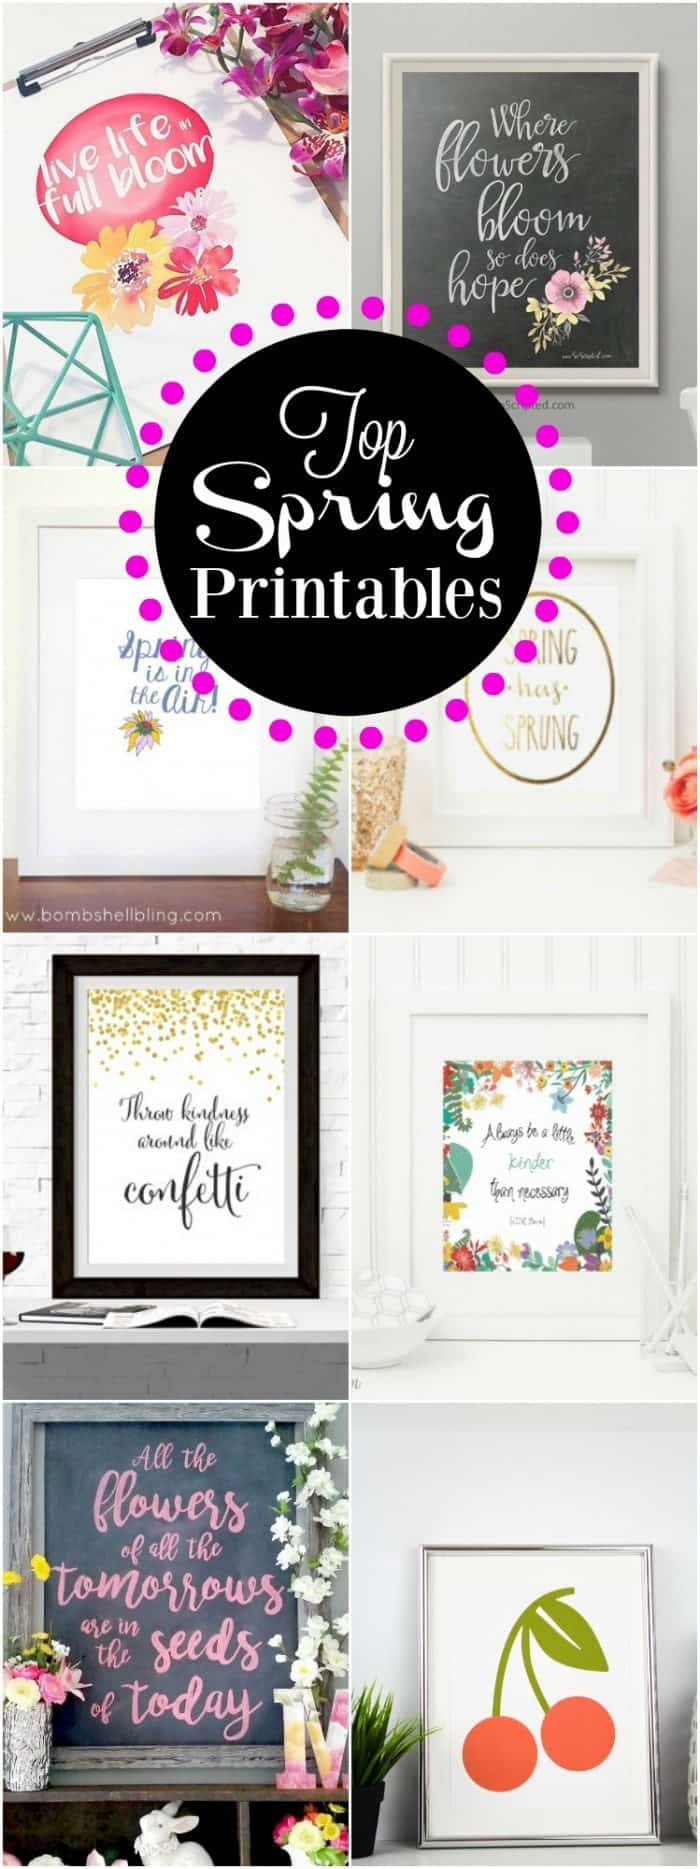 Need a quick and easy way to update your decor for Spring  These Top Spring Printables are the perfect addition to any home decor.